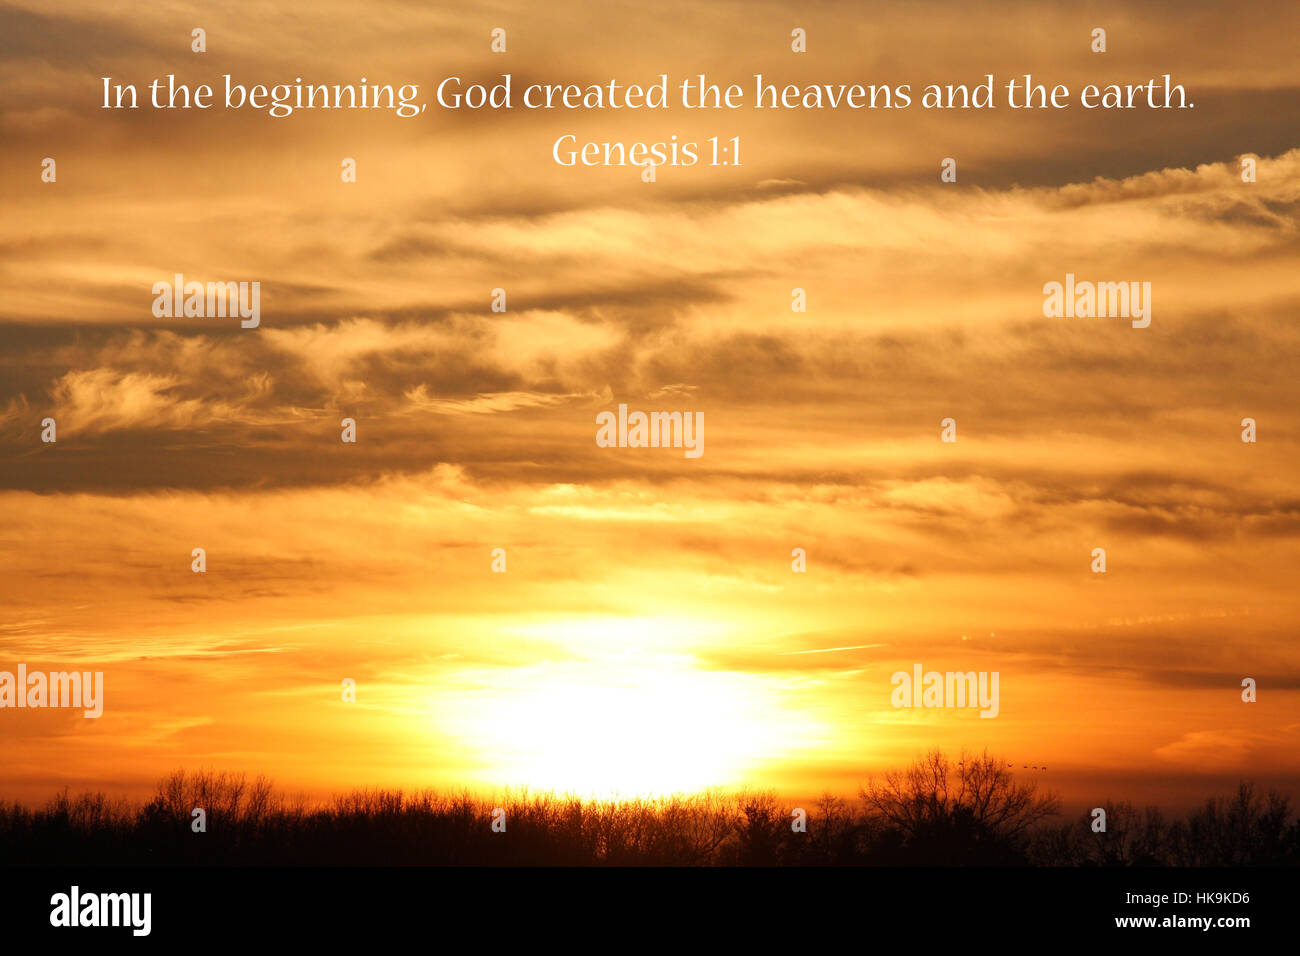 In The Beginning. Bible Verse Over A Sunset Stock Photo